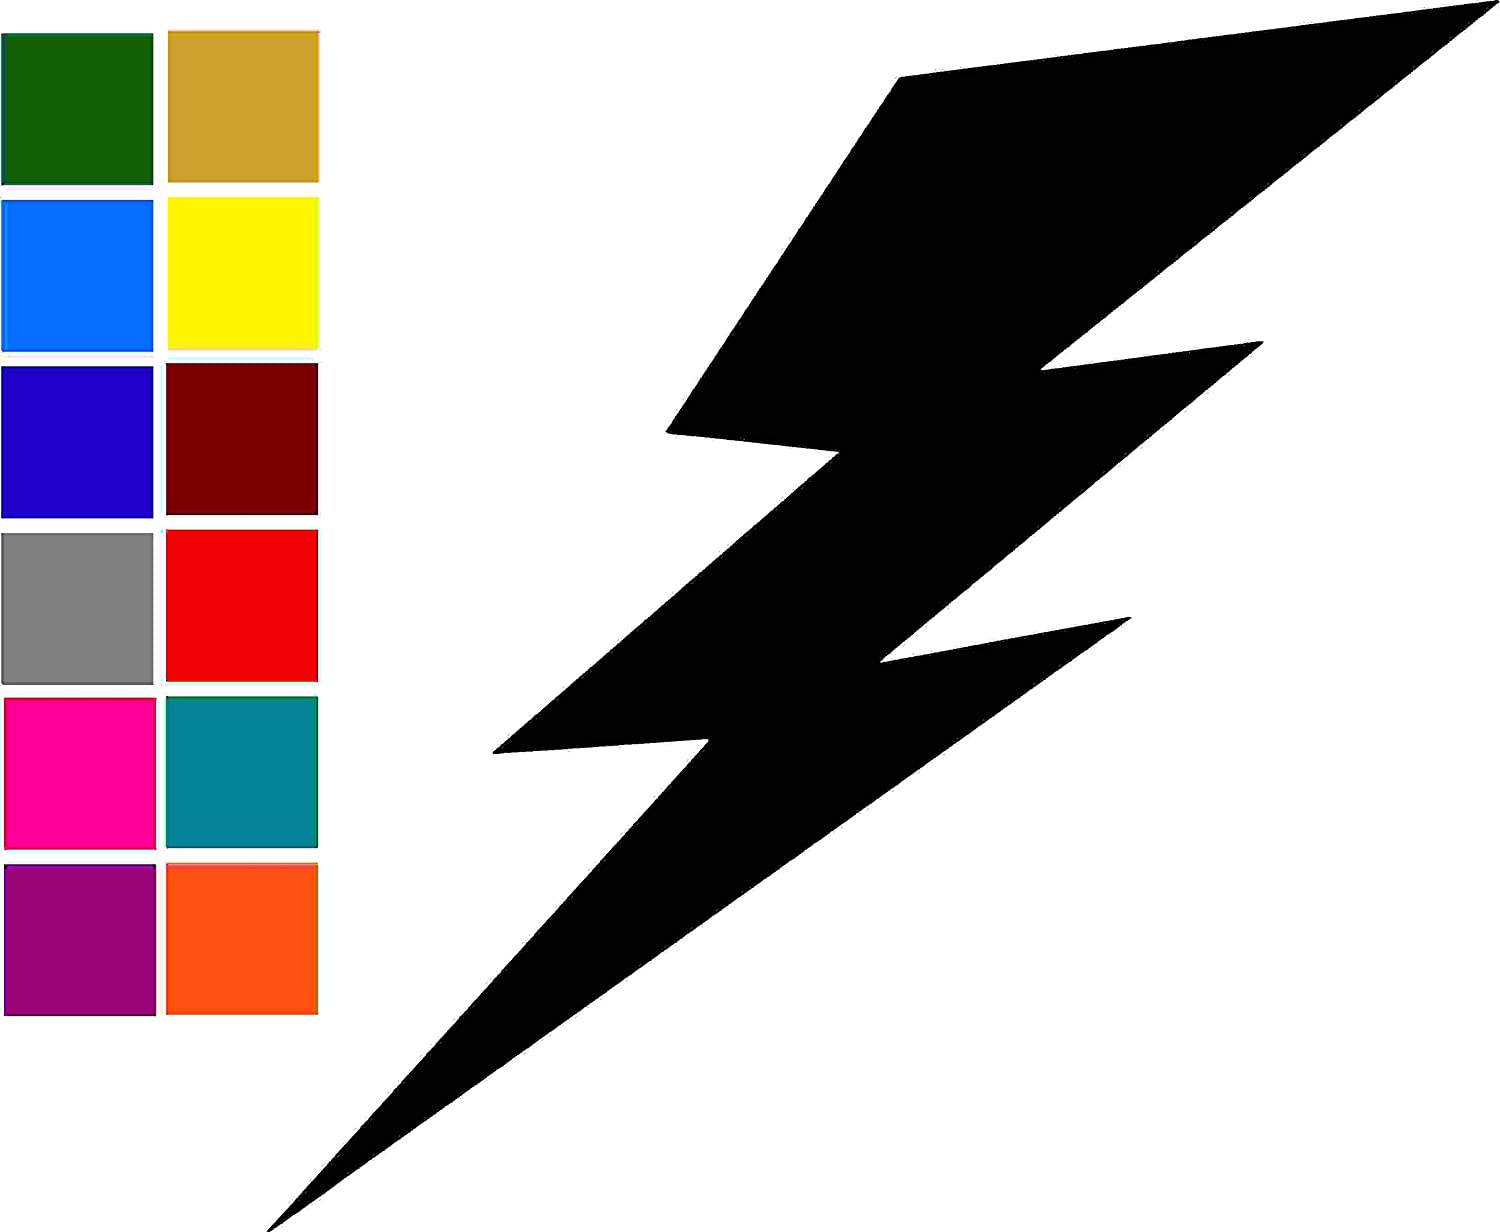 Lightning Bolt Quote Car Window Tumblers Wall Decal Sticker Vinyl Laptops Cellphones Phones Tablets Ipads Helmets Motorcycles Computer Towers V and T Gifts